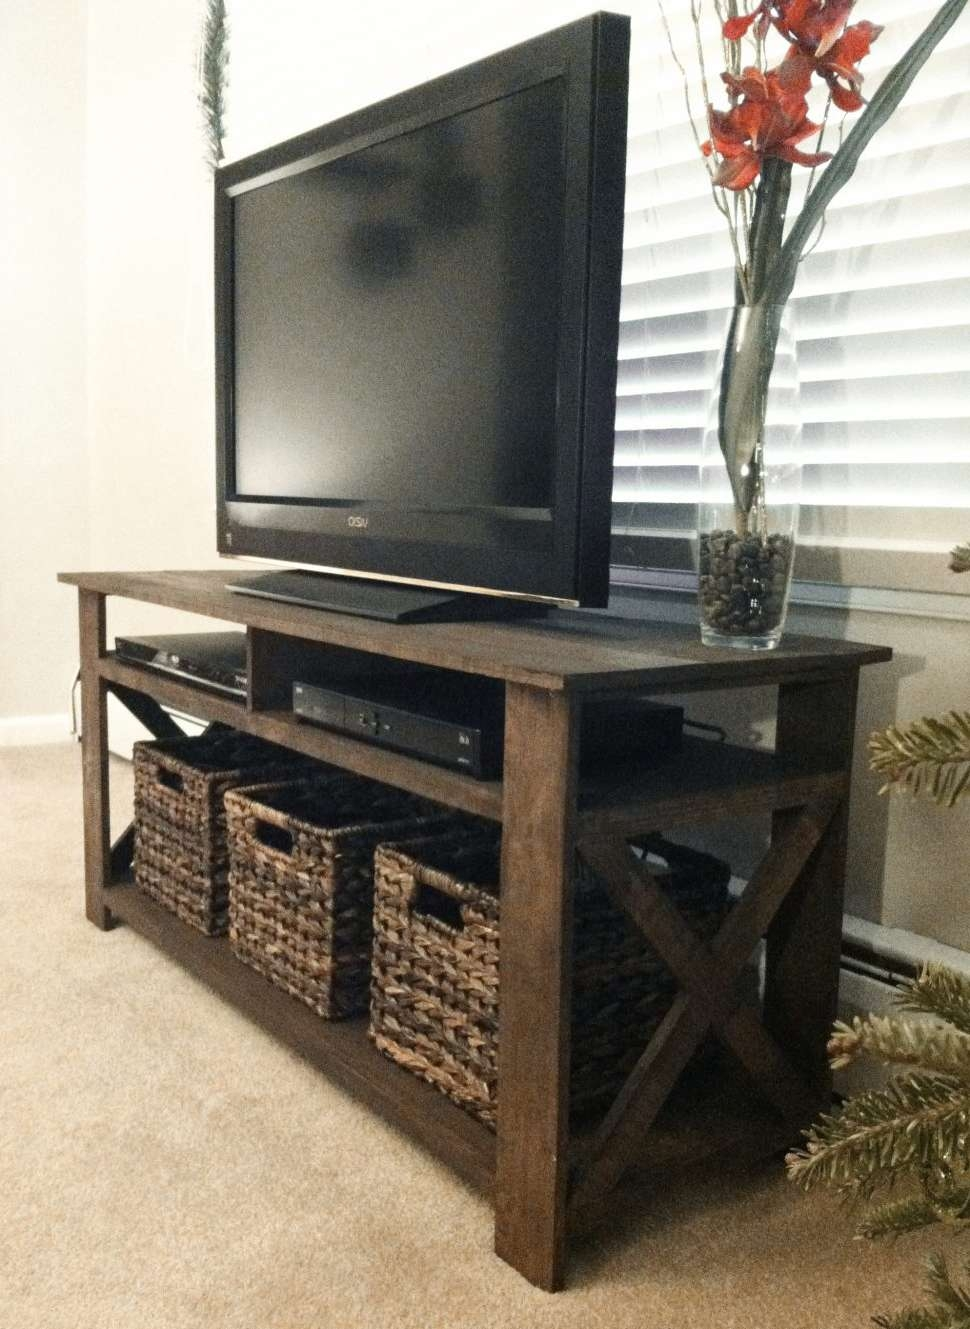 Tv Stand With Baskets Within Tv Stands With Baskets (View 10 of 15)